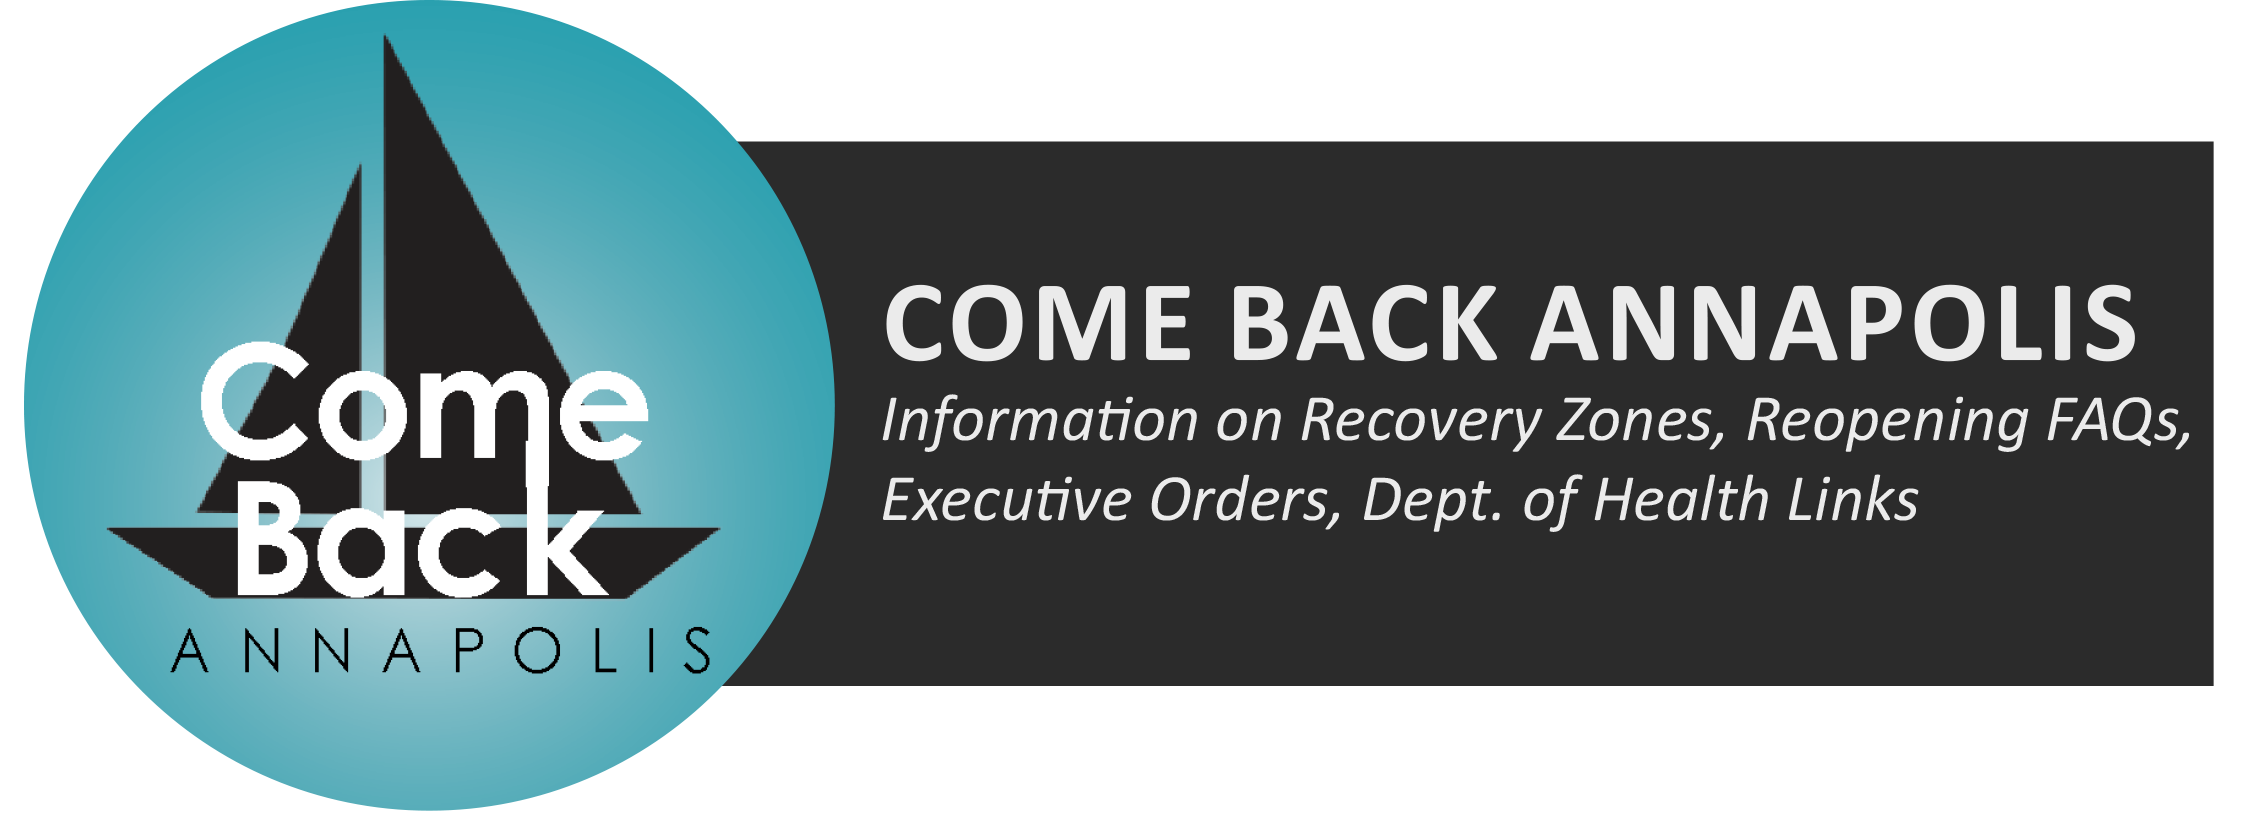 Come Back Annapolis: Information on Recovery Zones, Reopening FAQs, Executive Orders, Dept. of Healt